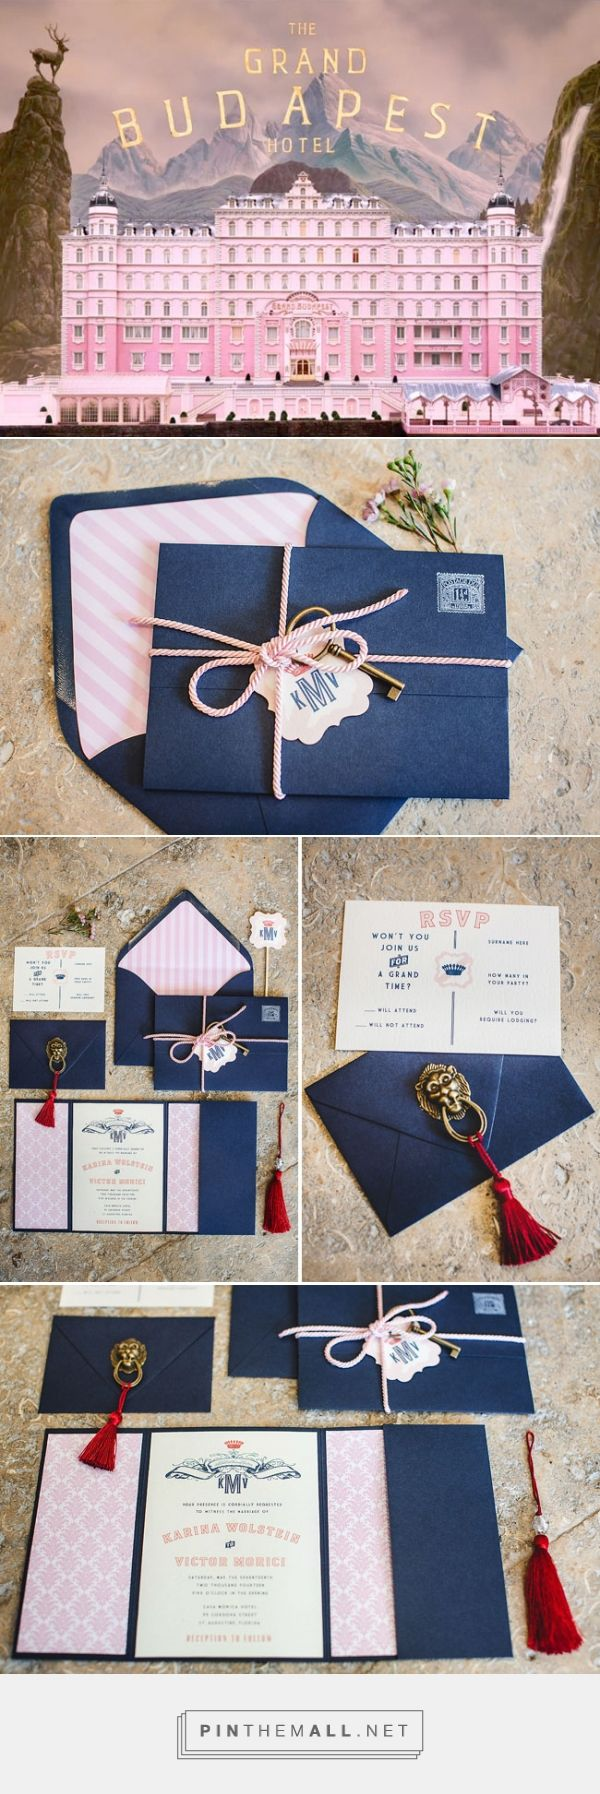 The Grand Budapest Hotel Wedding Invitations by French Knot Studios | Fivestar Branding Agency – Design and Branding Agency & Curated Inspiration Gallery